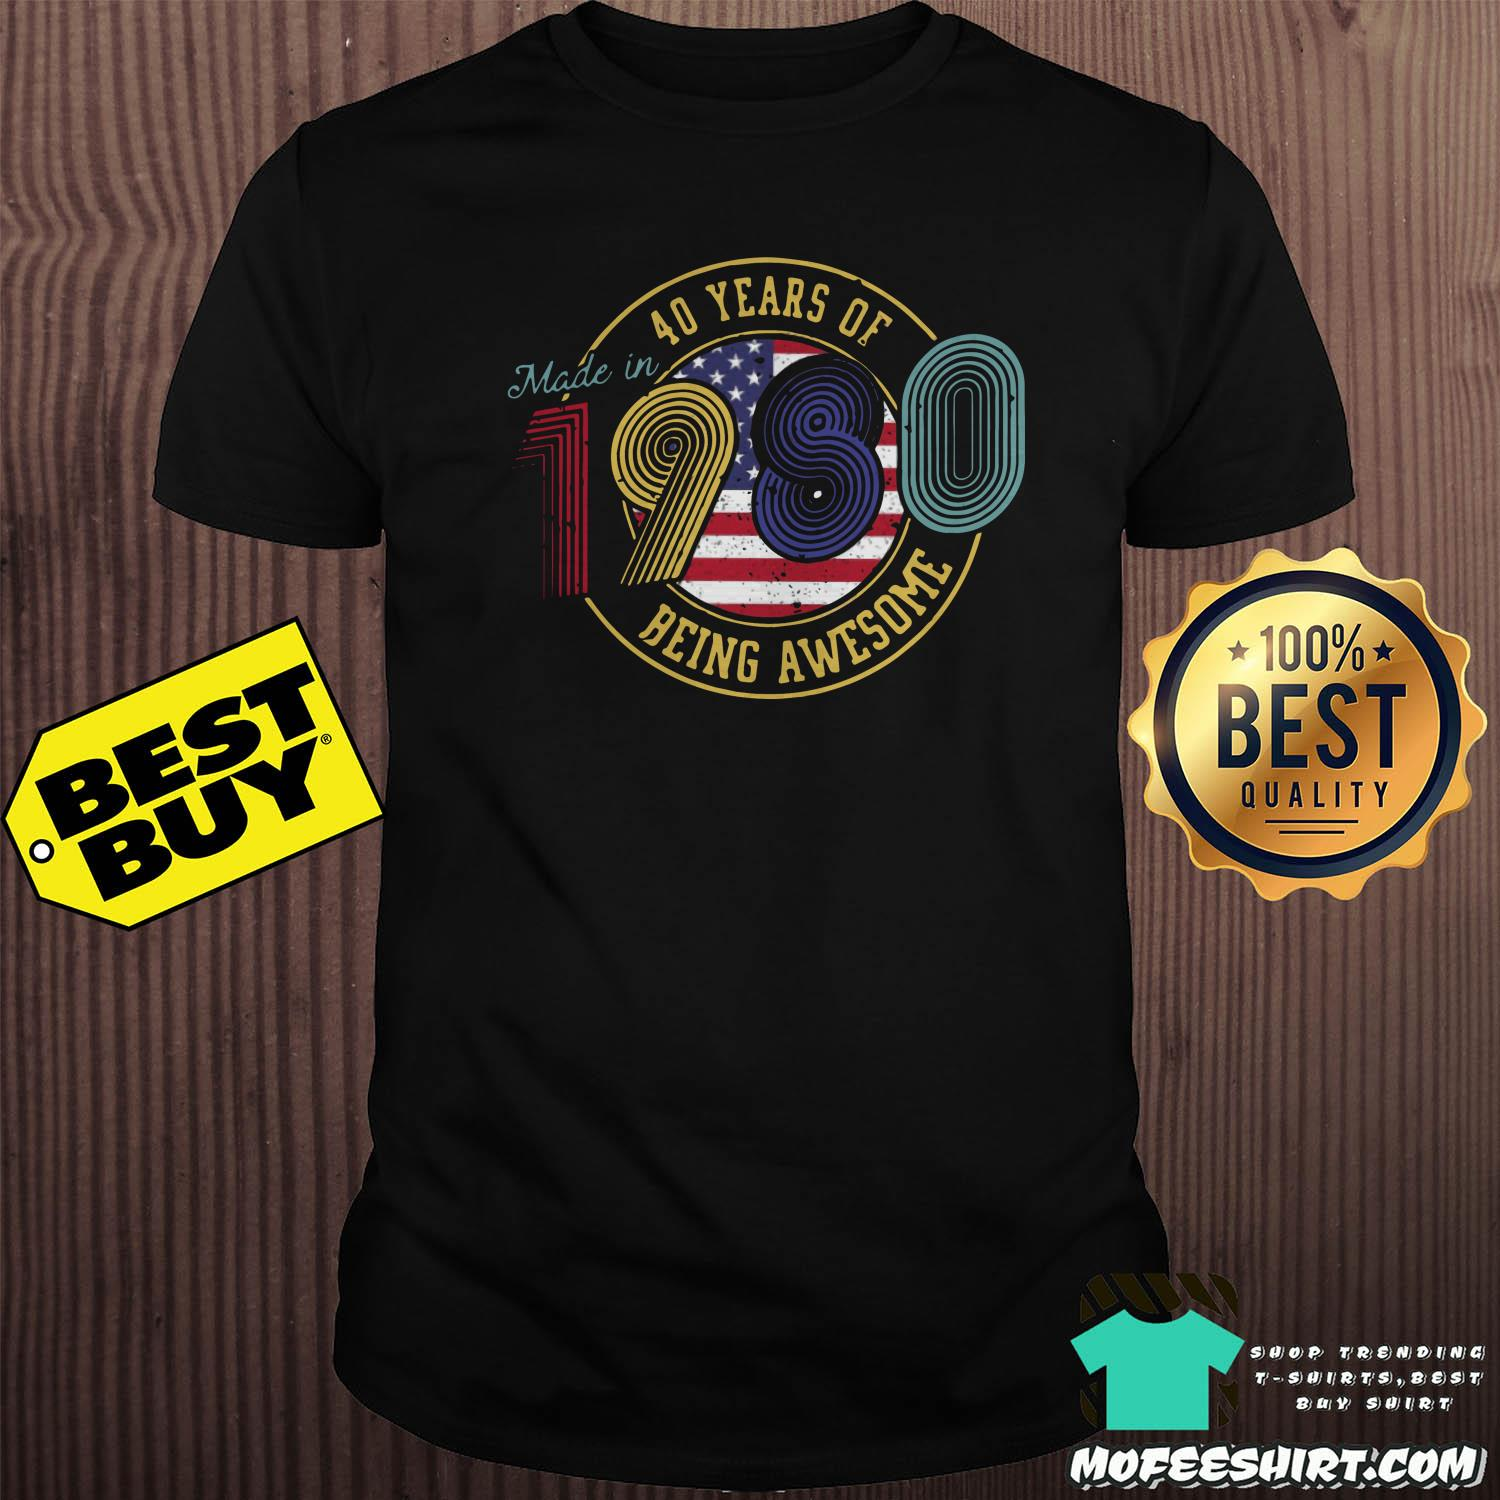 made in 40 years of 1980 being awesome american vintage shirt - Made in 40 Years Of 1980 Being Awesome American Vintage Shirt